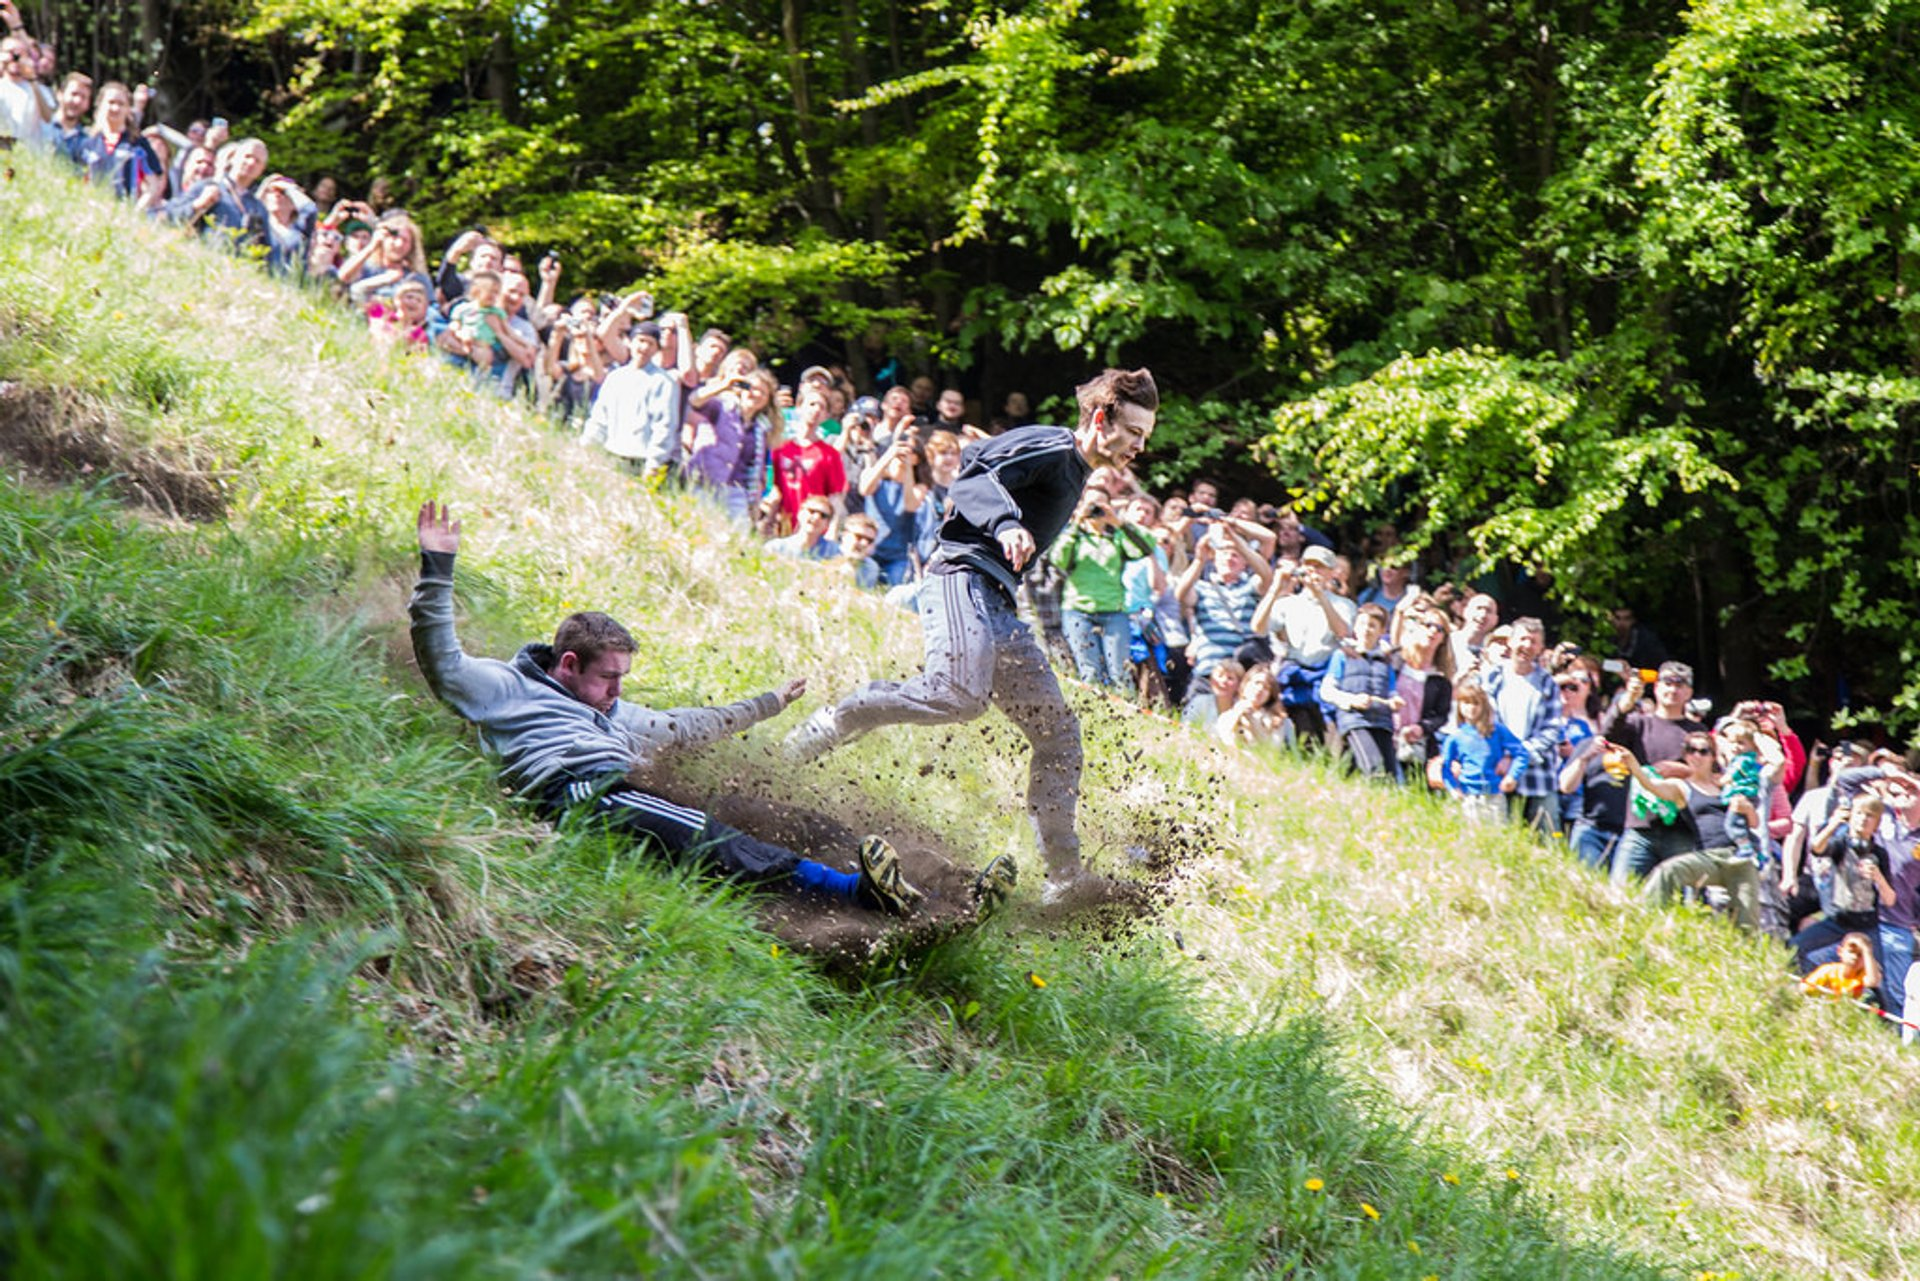 Best time for Cooper's Hill Cheese-Rolling and Wake in England